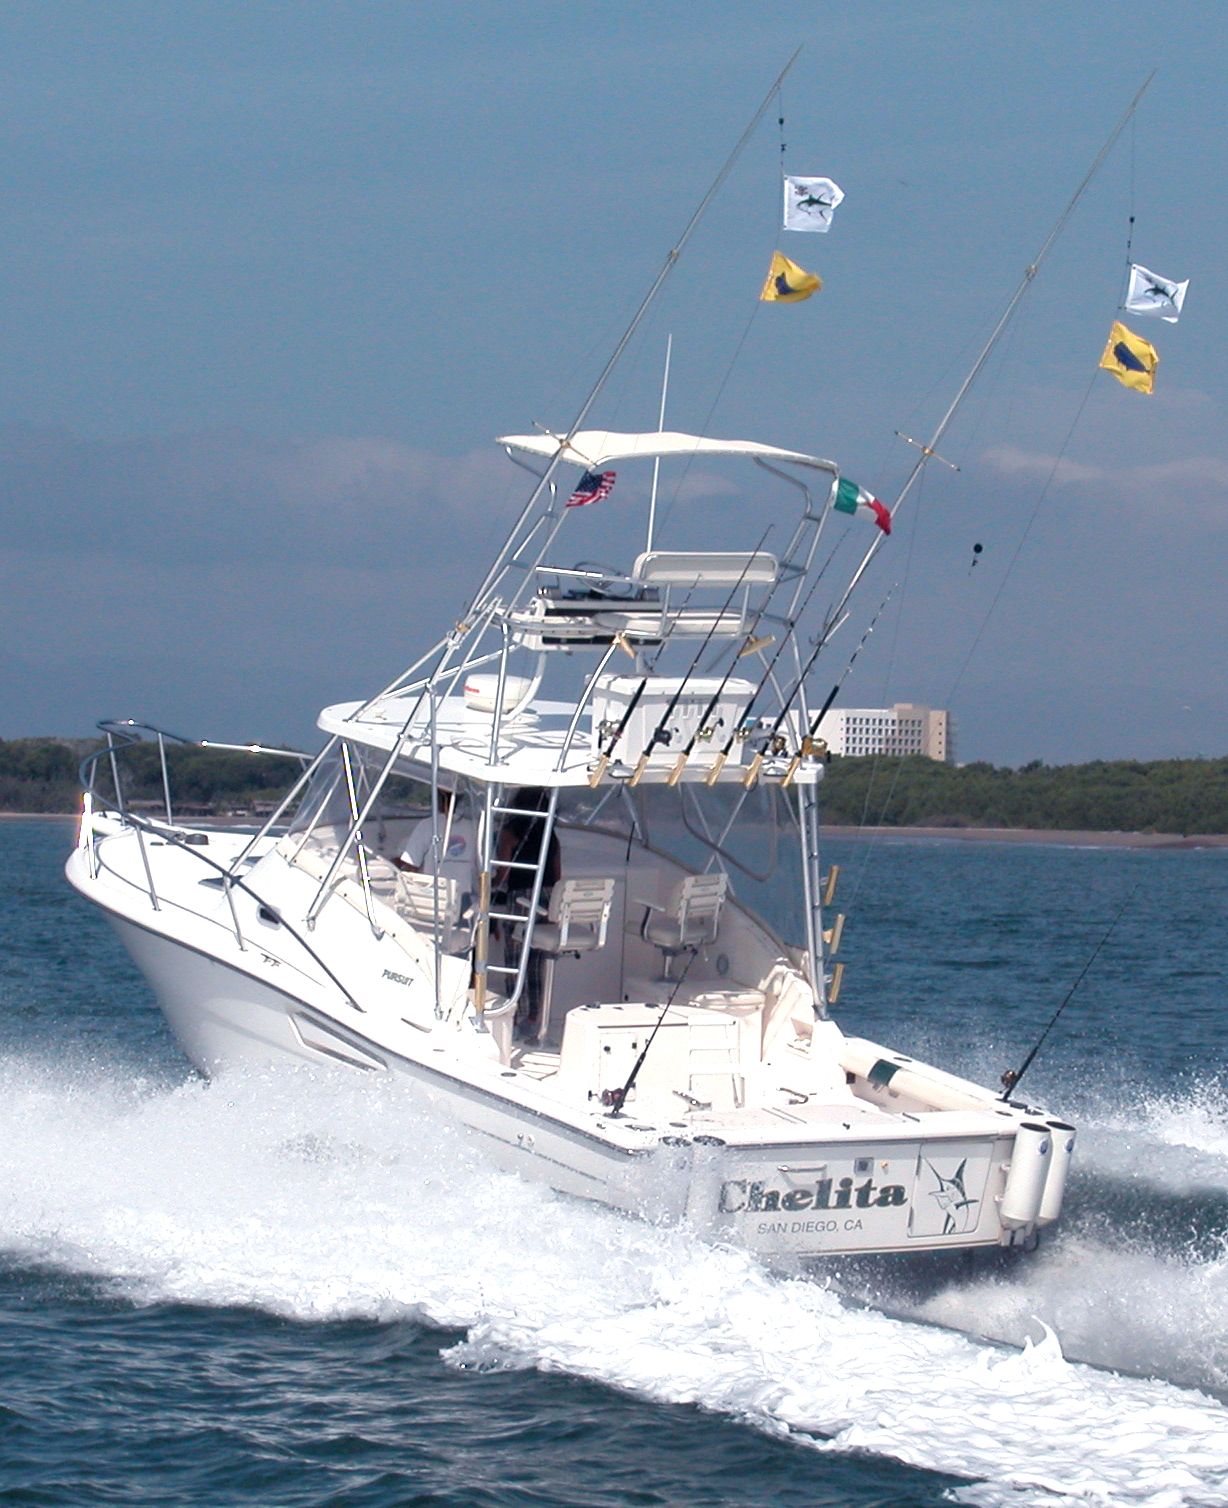 Puerto vallarta fishing charters for Fishing puerto vallarta